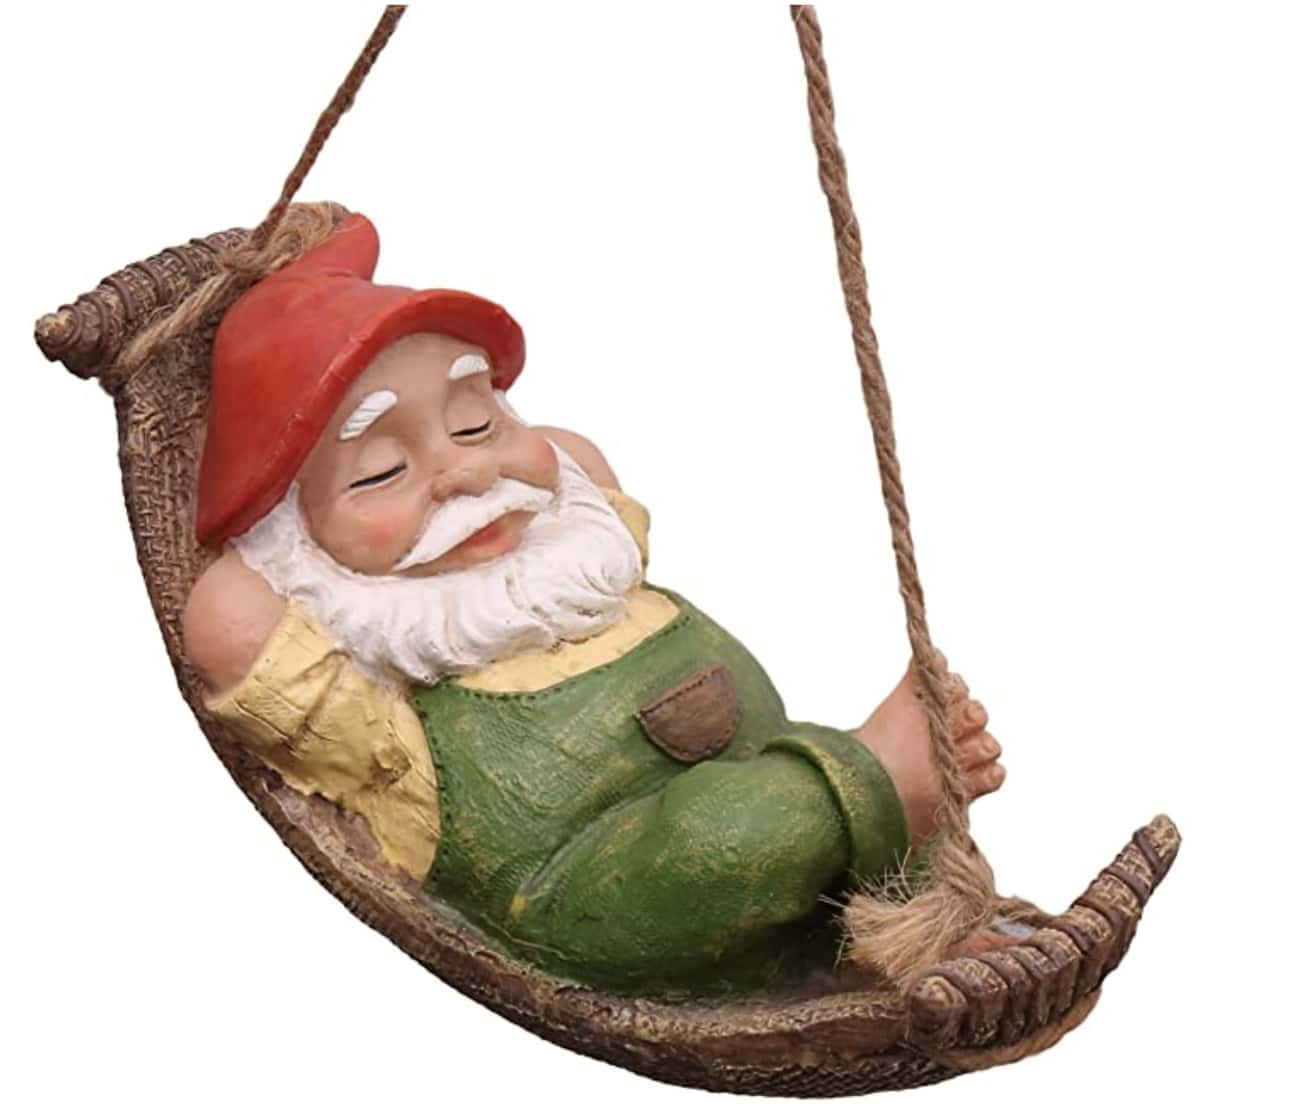 Relaxed Gnome is listed (or ranked) 1 on the list 20 Cool Garden Gnomes To Spice Up Your Yard